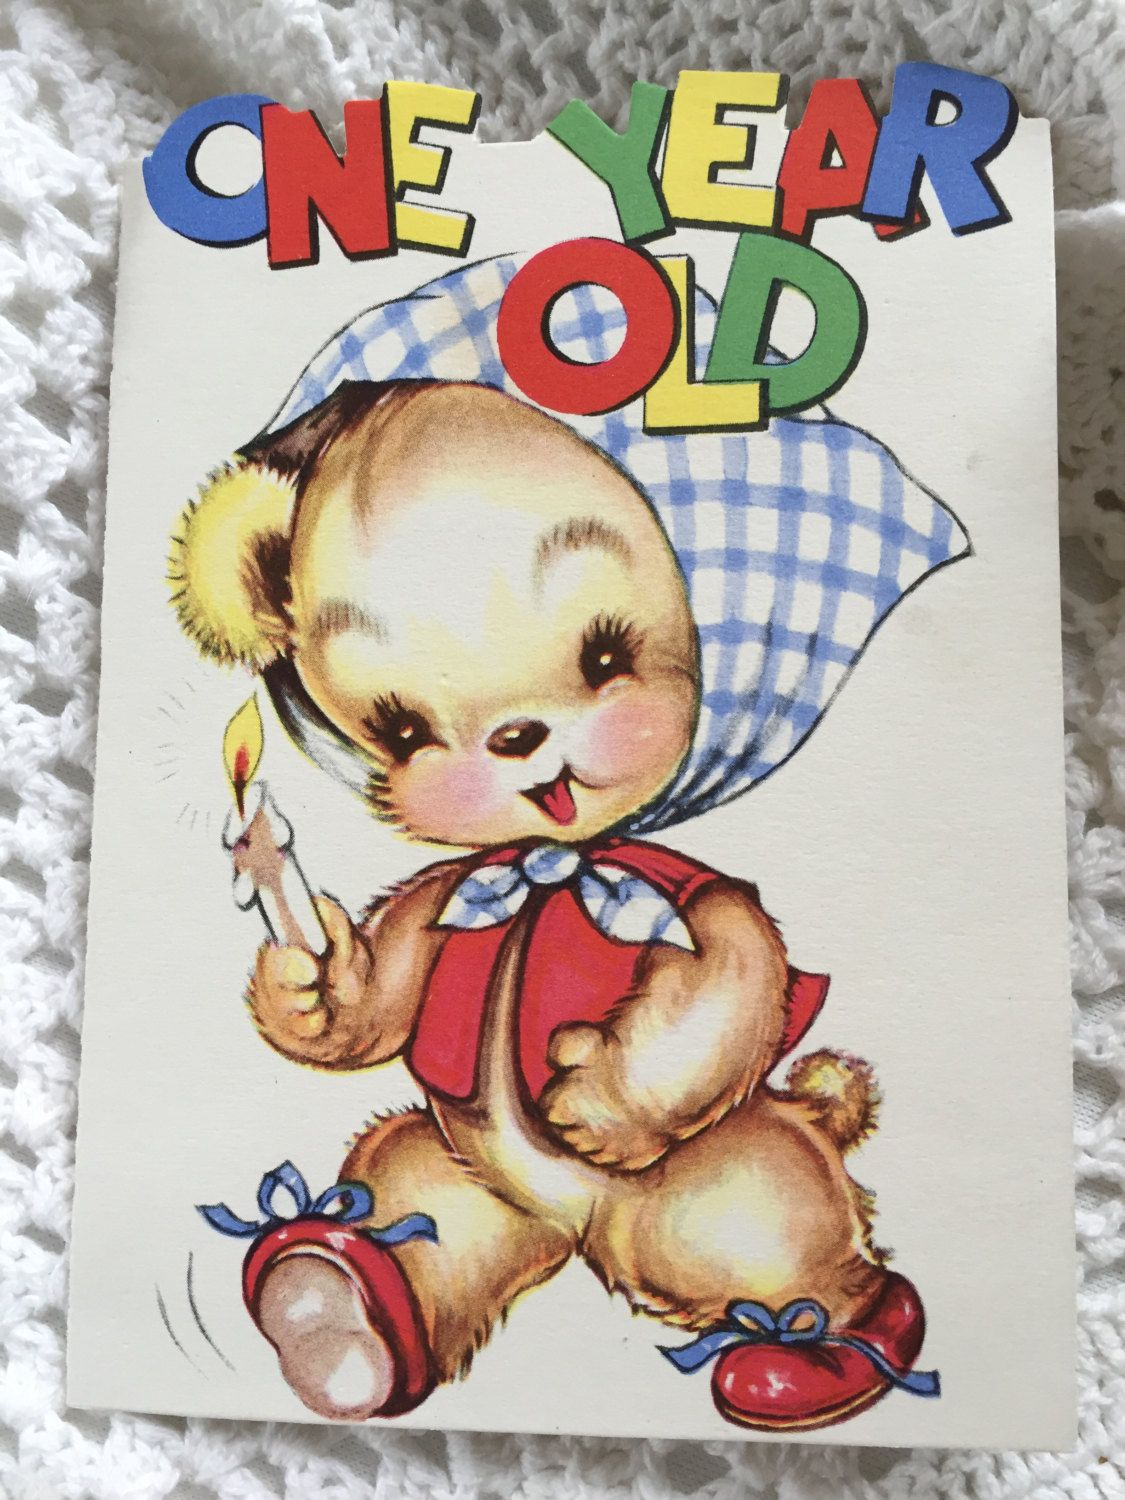 Vintage 1940s bear happy birthday card for one year old die cut vintage 1940s bear happy birthday card for one year old die cut birthday greeting card kristyandbryce Choice Image